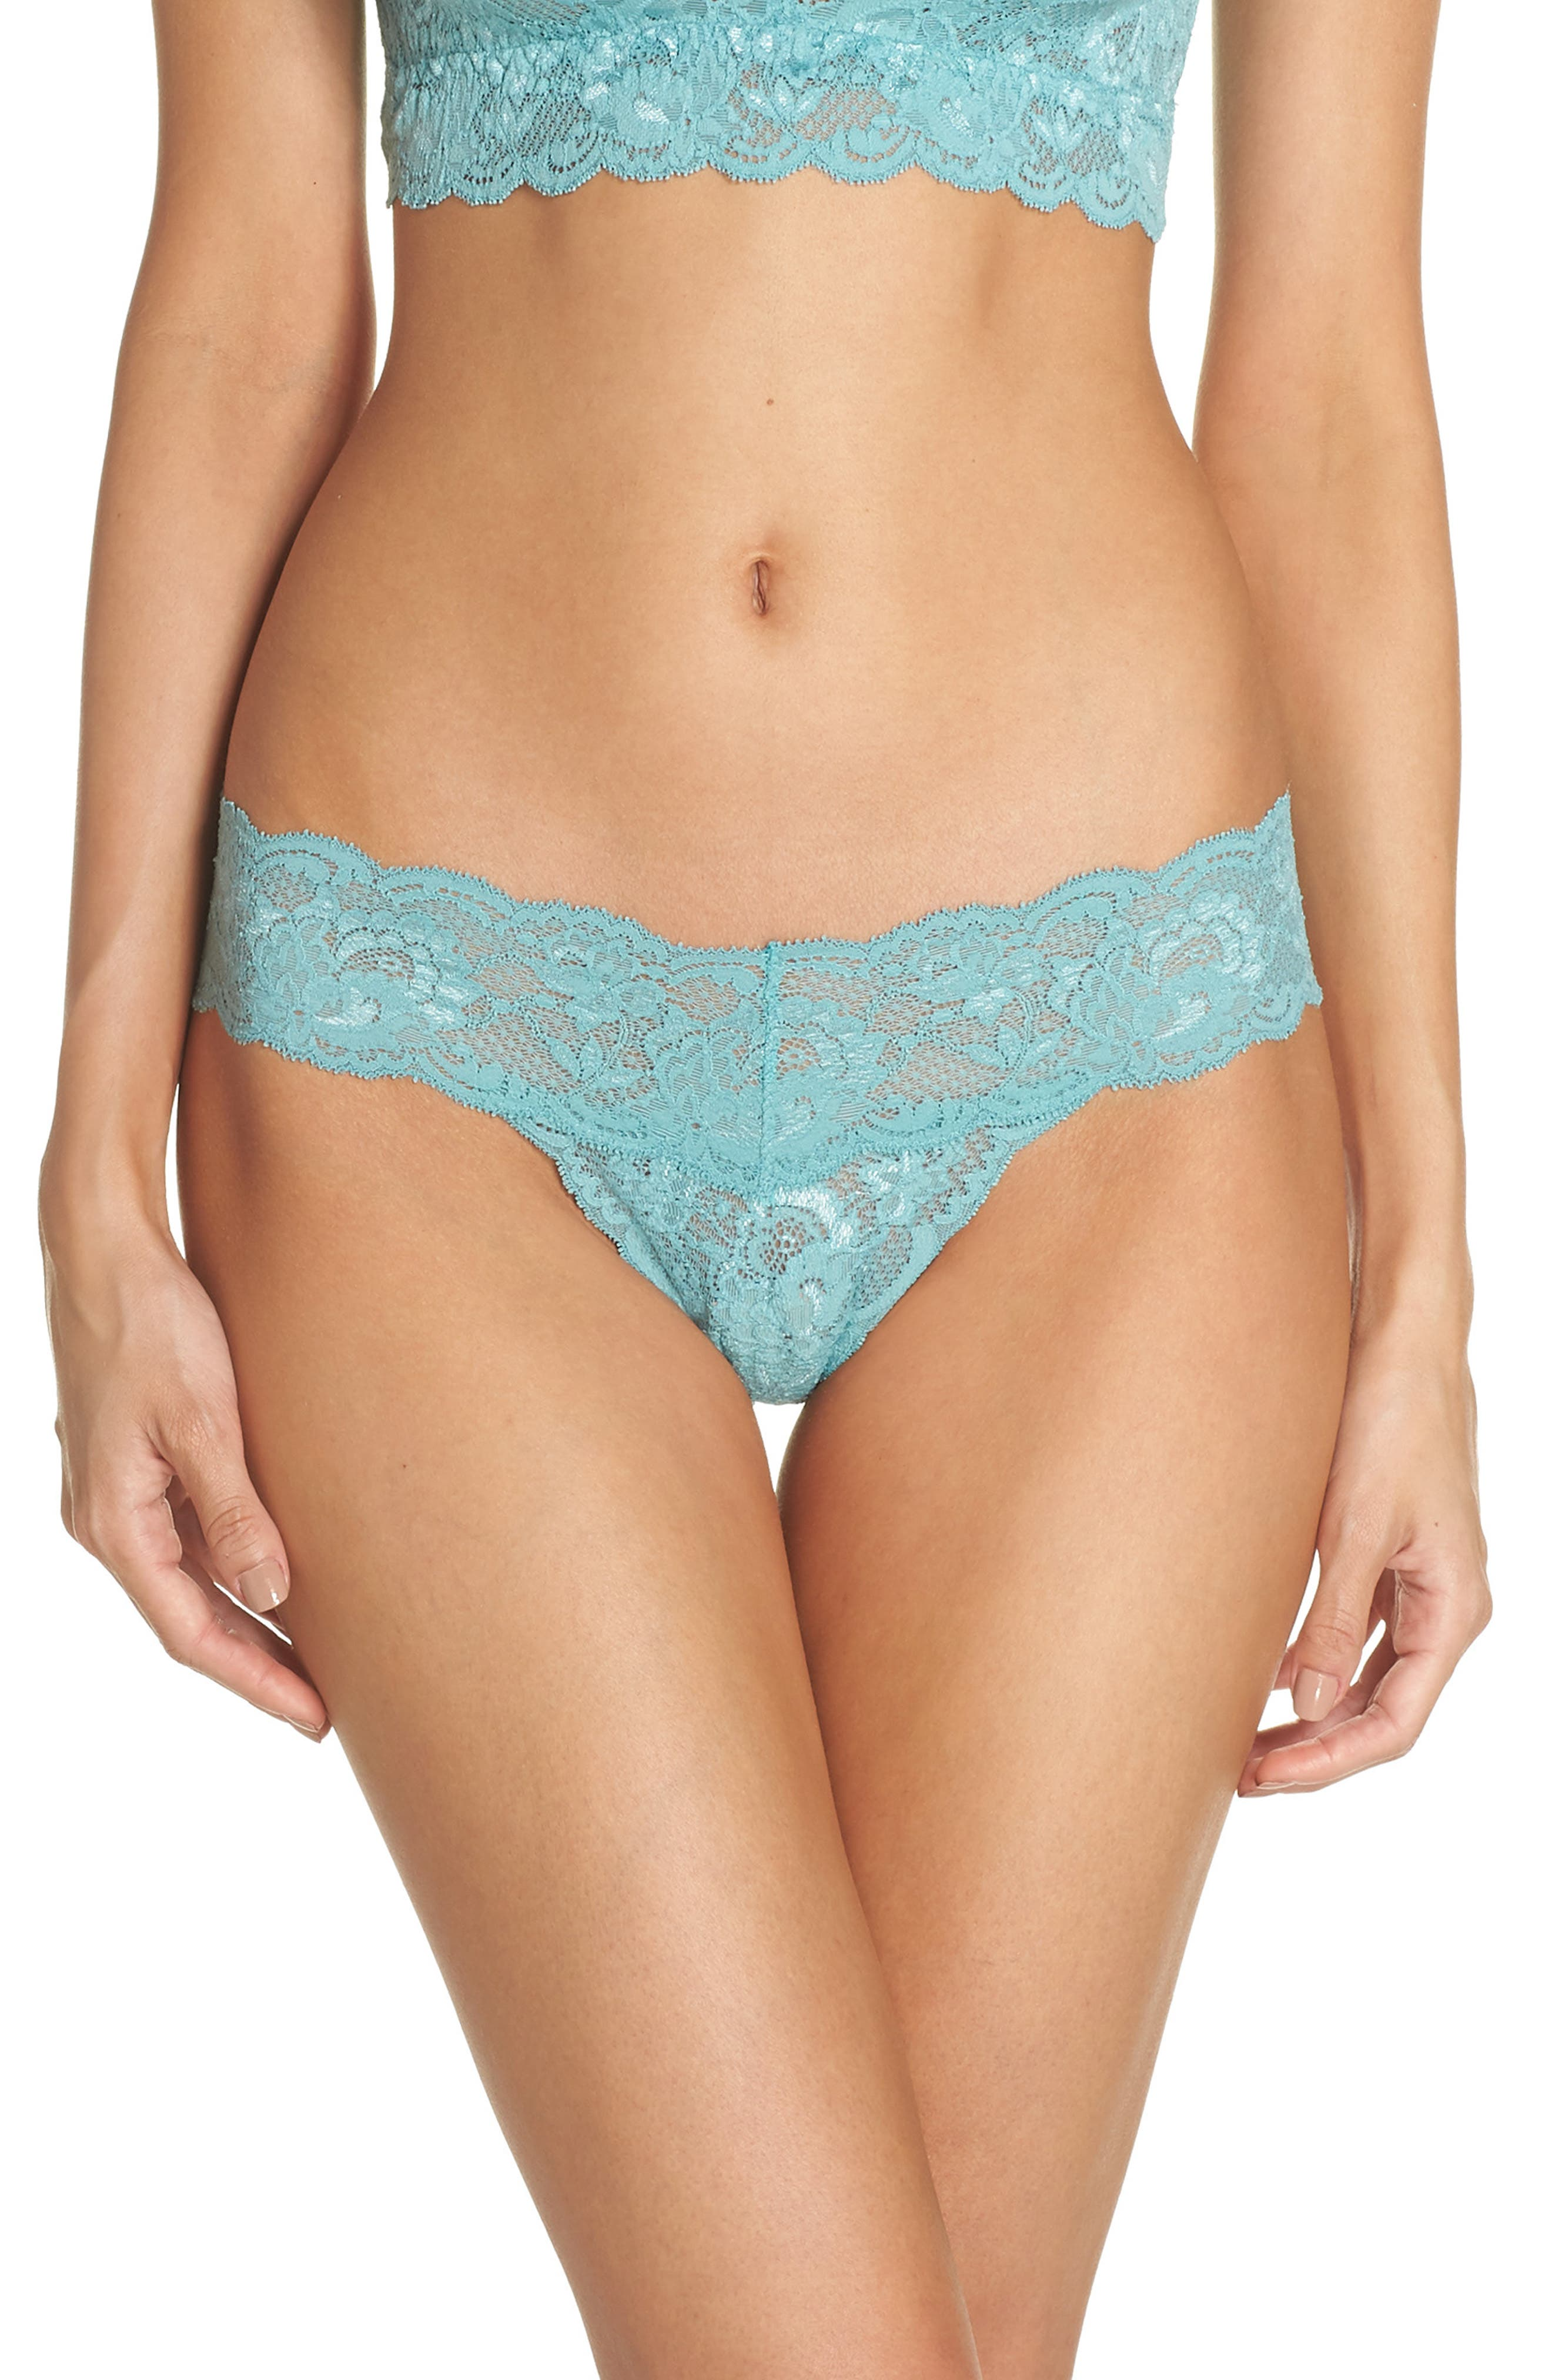 'Never Say Never Cutie' Thong,                             Alternate thumbnail 117, color,